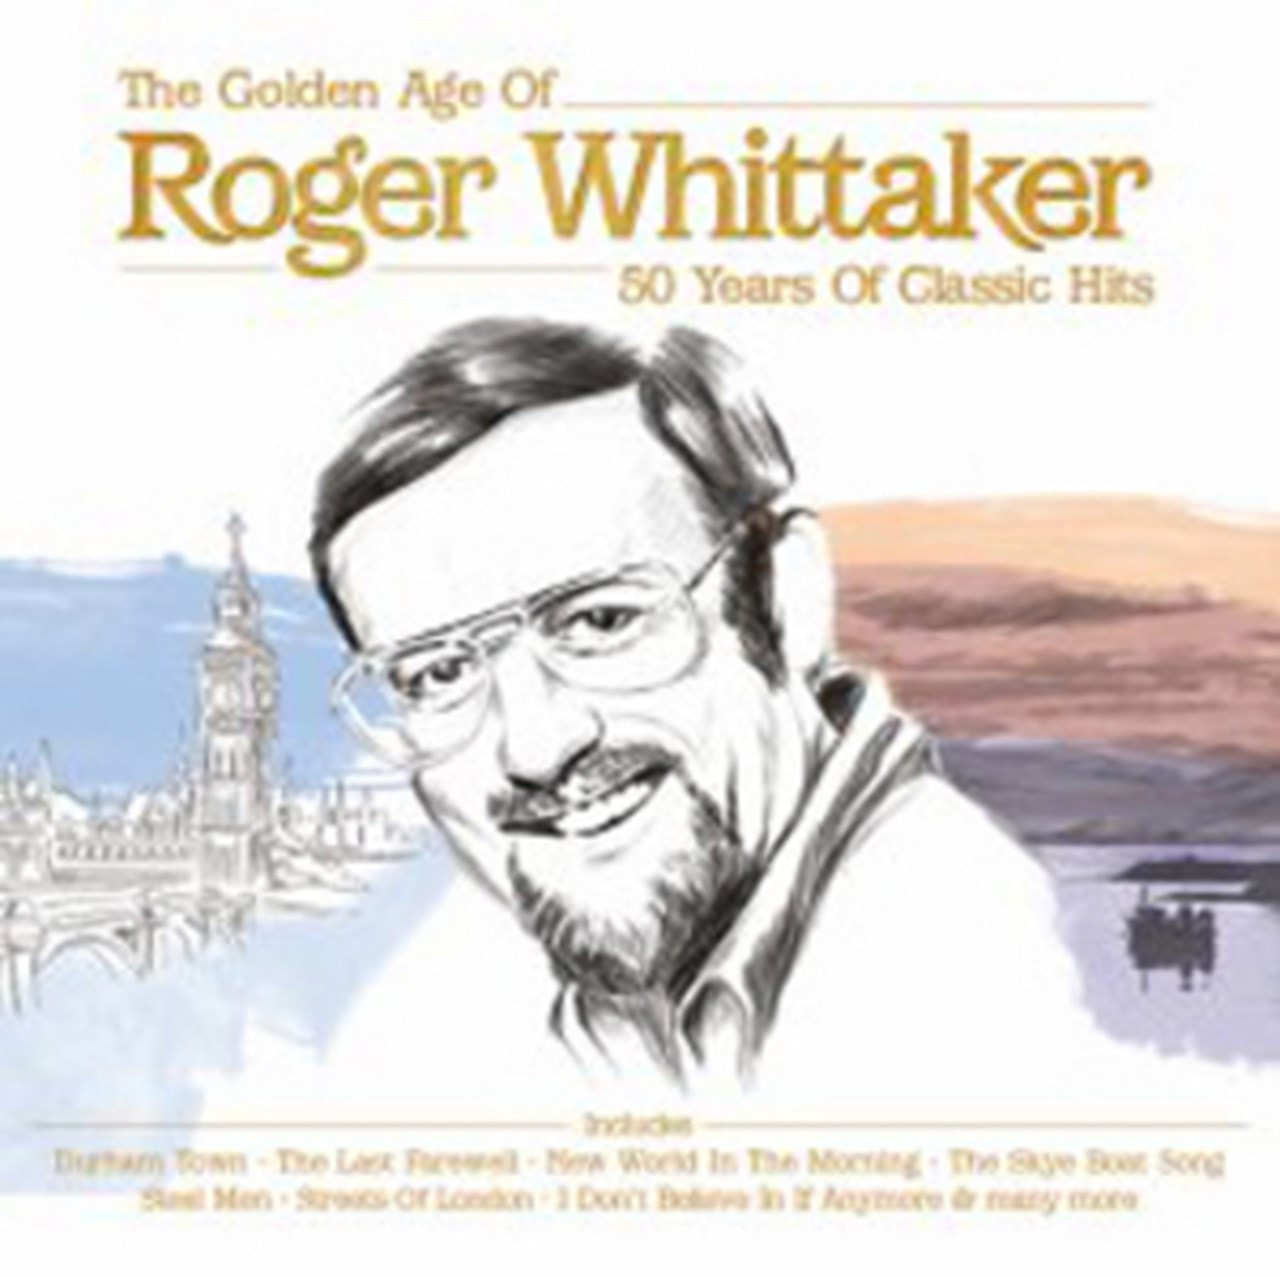 The Golden Age of Roger Whittaker: 50 Years of Classic Hits - 1